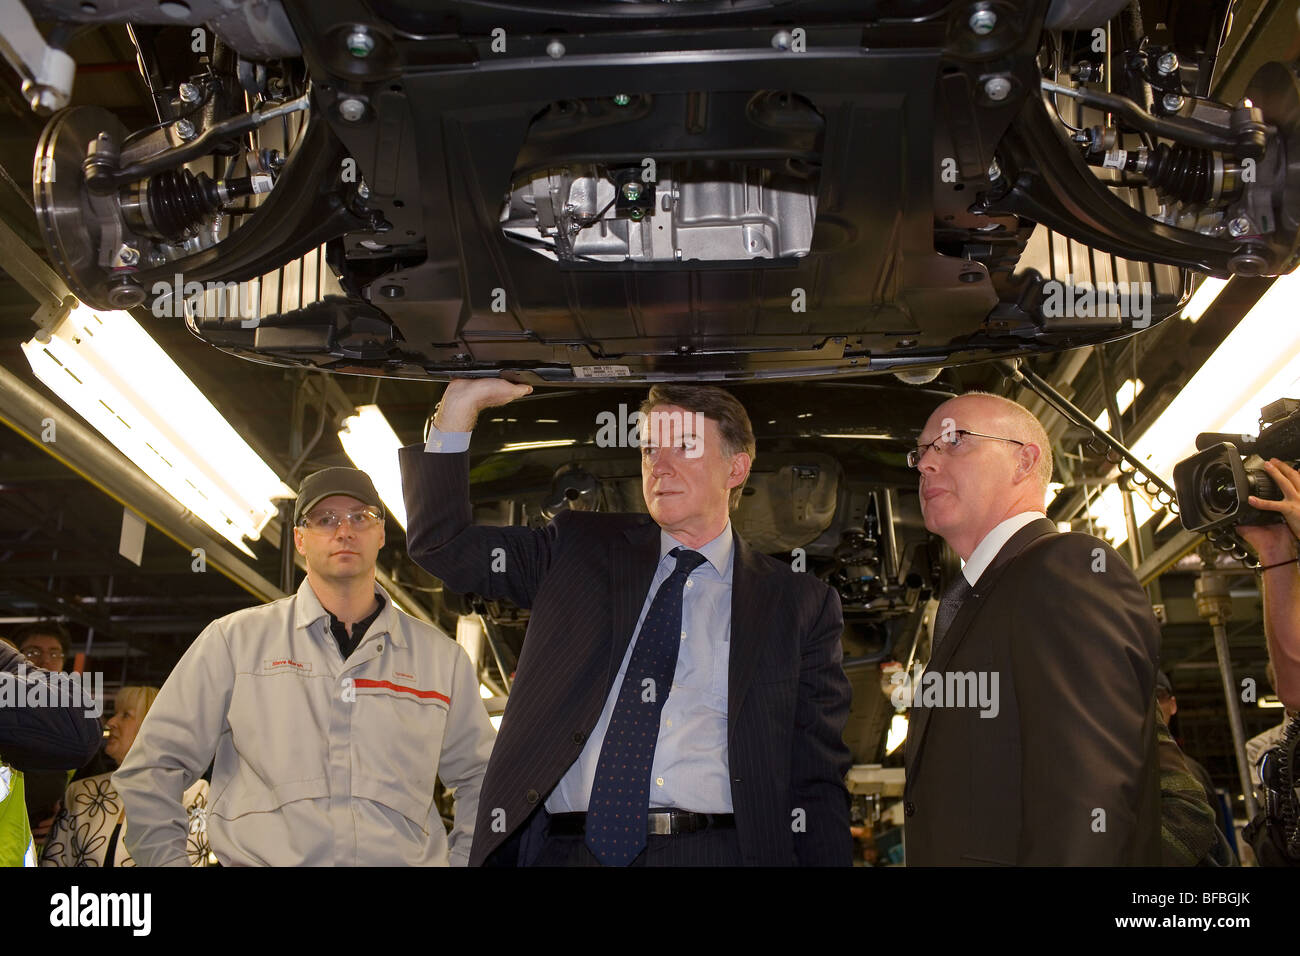 Lord Peter Mandelson on a visit to the Nissan car factory in Sunderland. Stock Photo